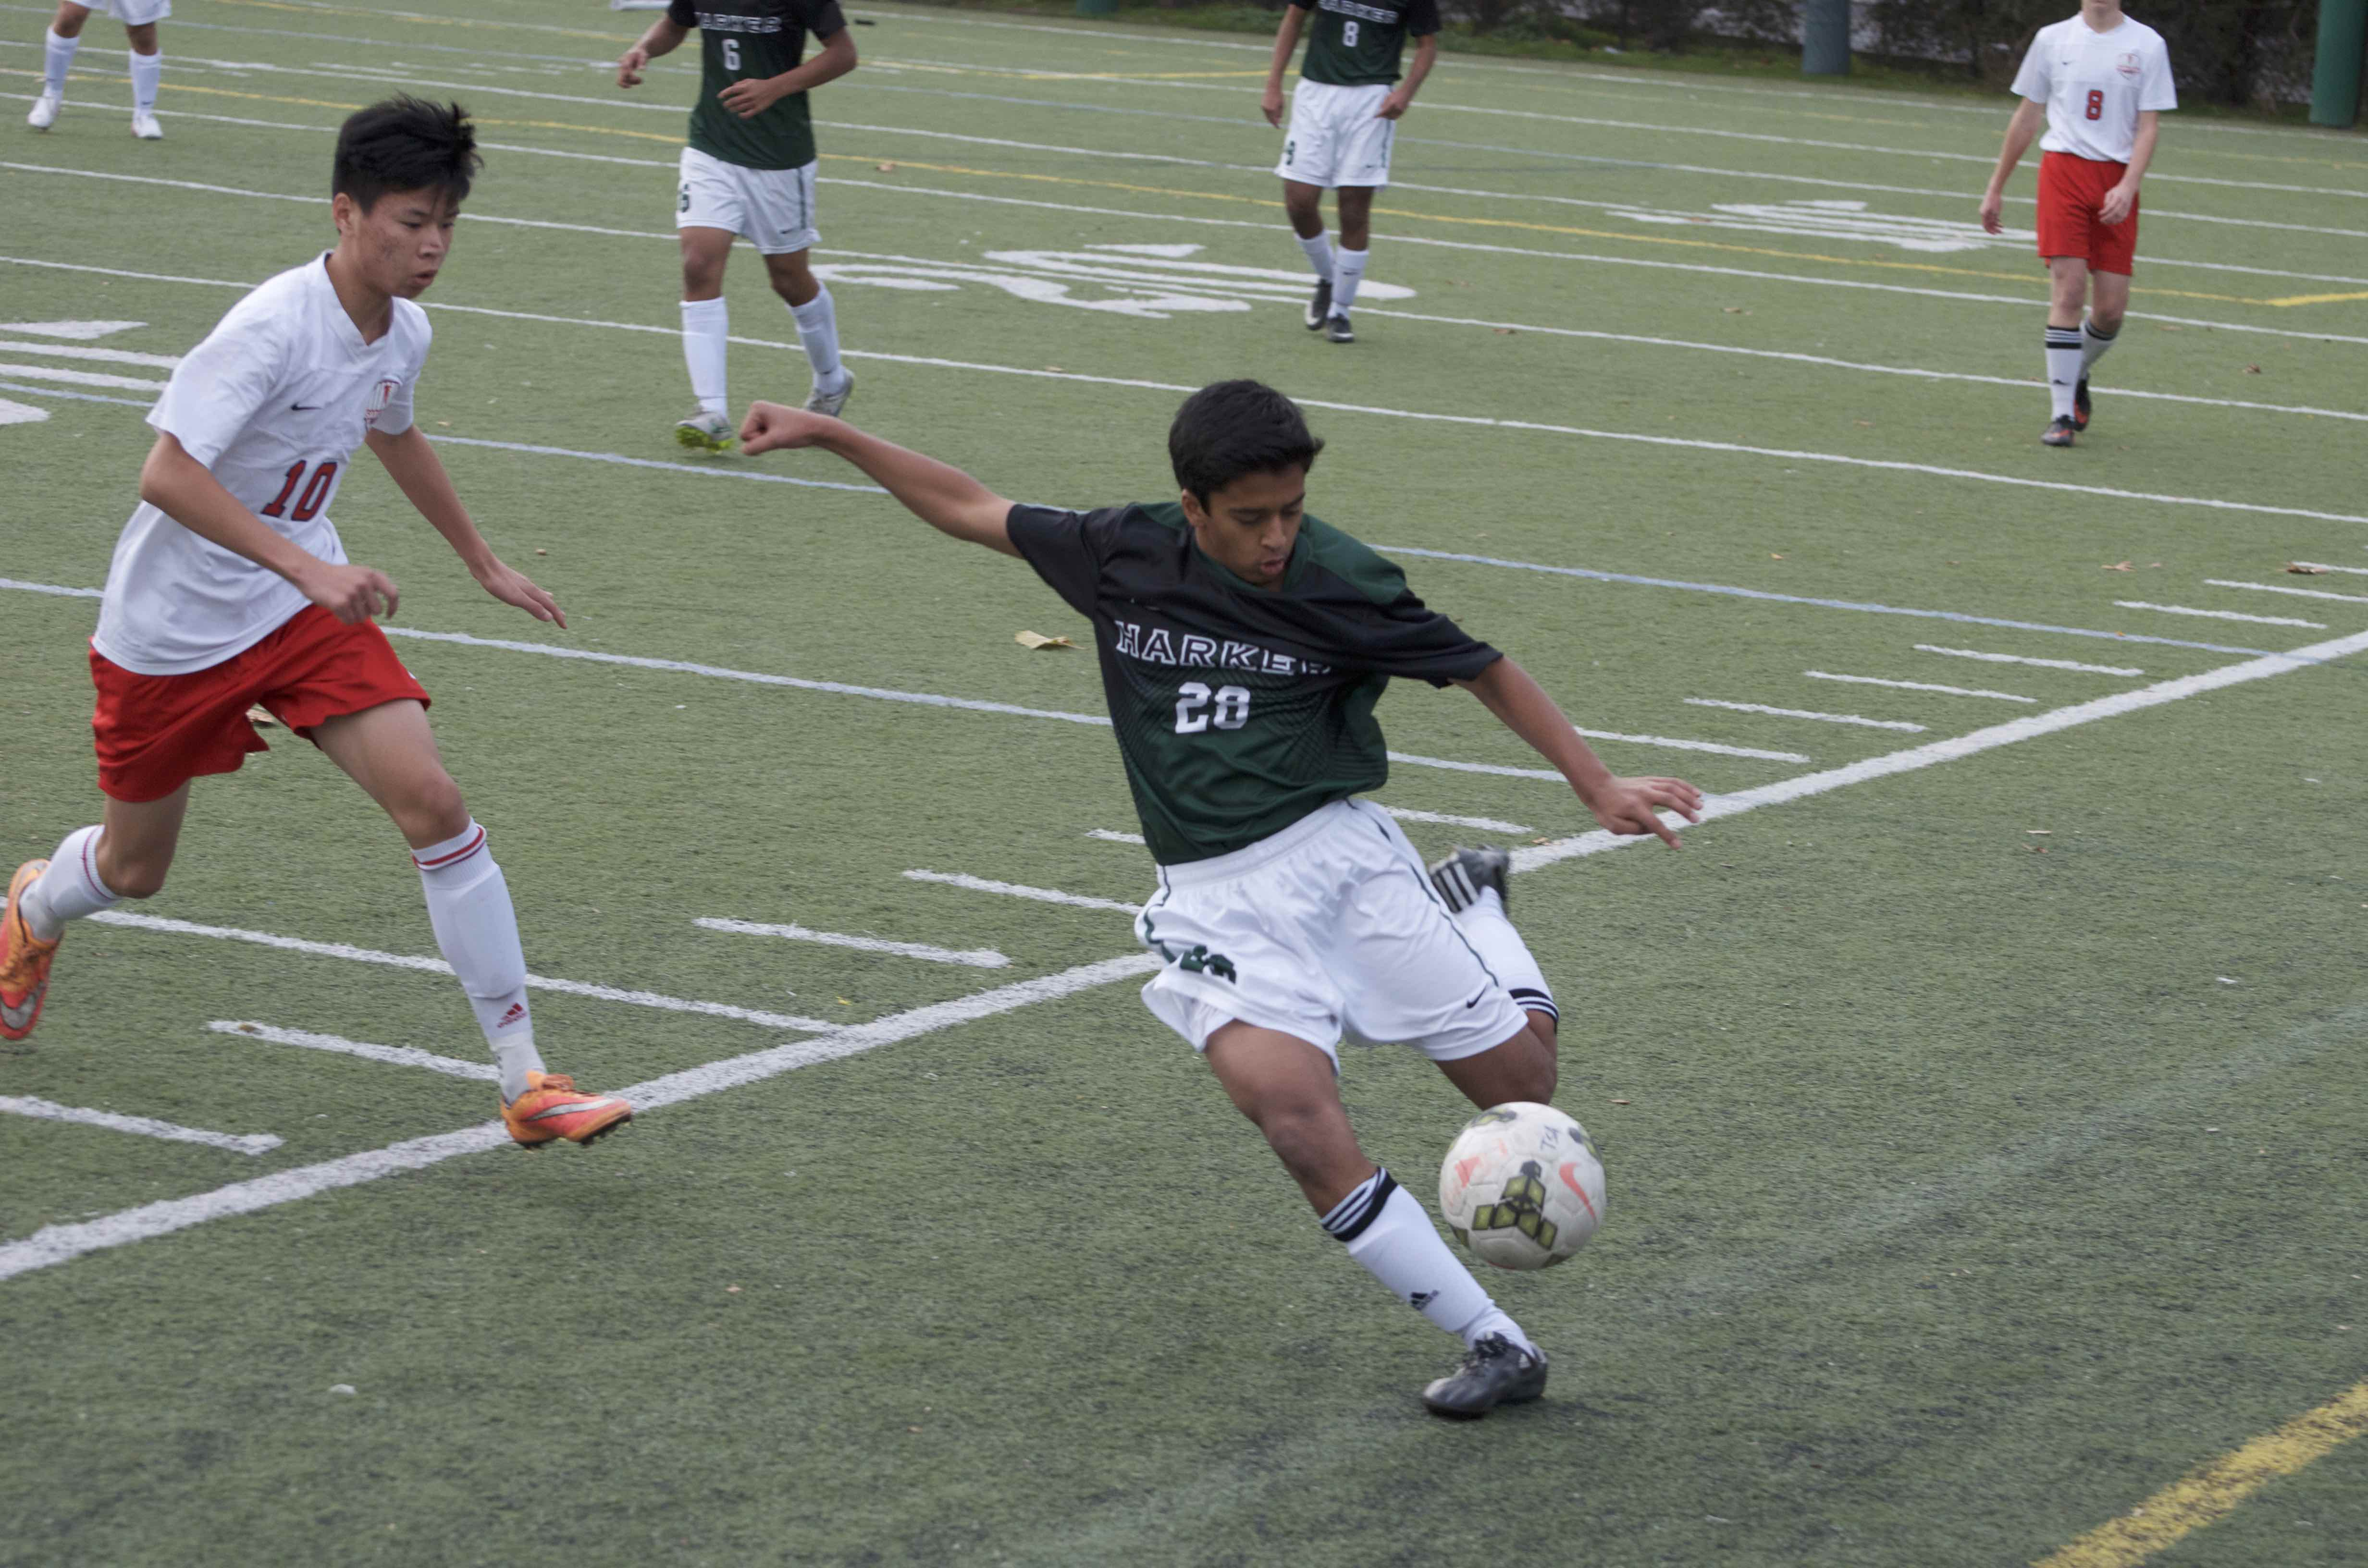 Rohit Shah (11) kicks far past the goal line. This is his second year on the Varsity Boys Soccer team.